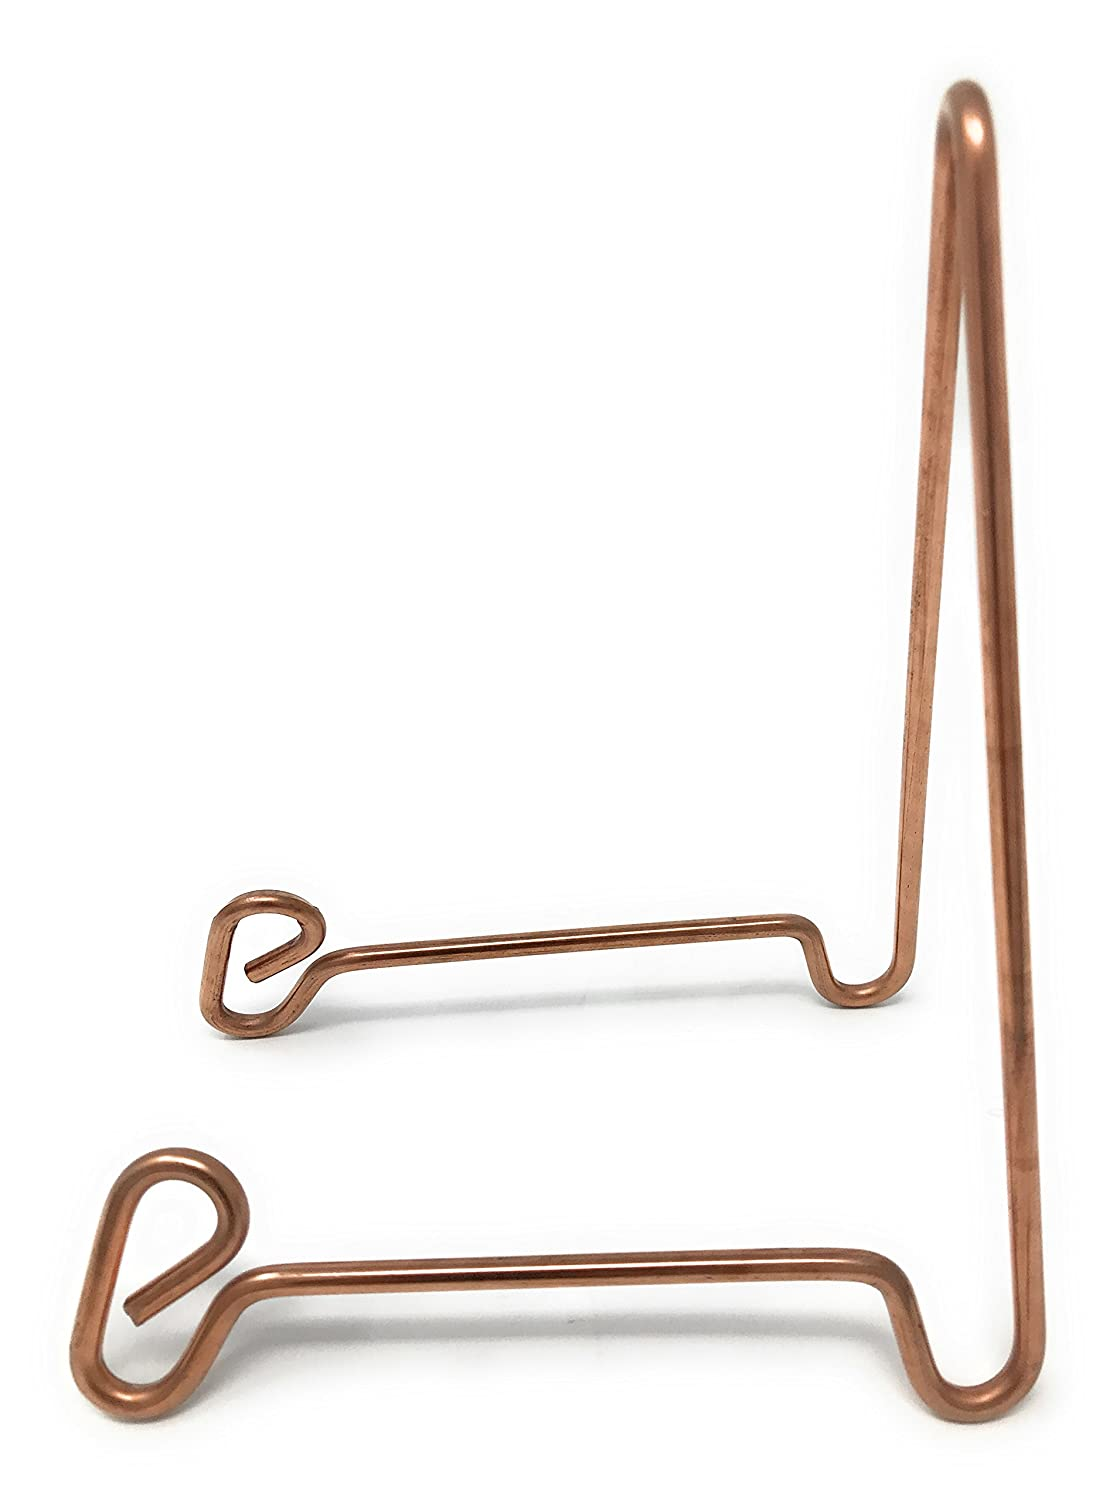 Bowl Stand, Medium, Copper colord Steel